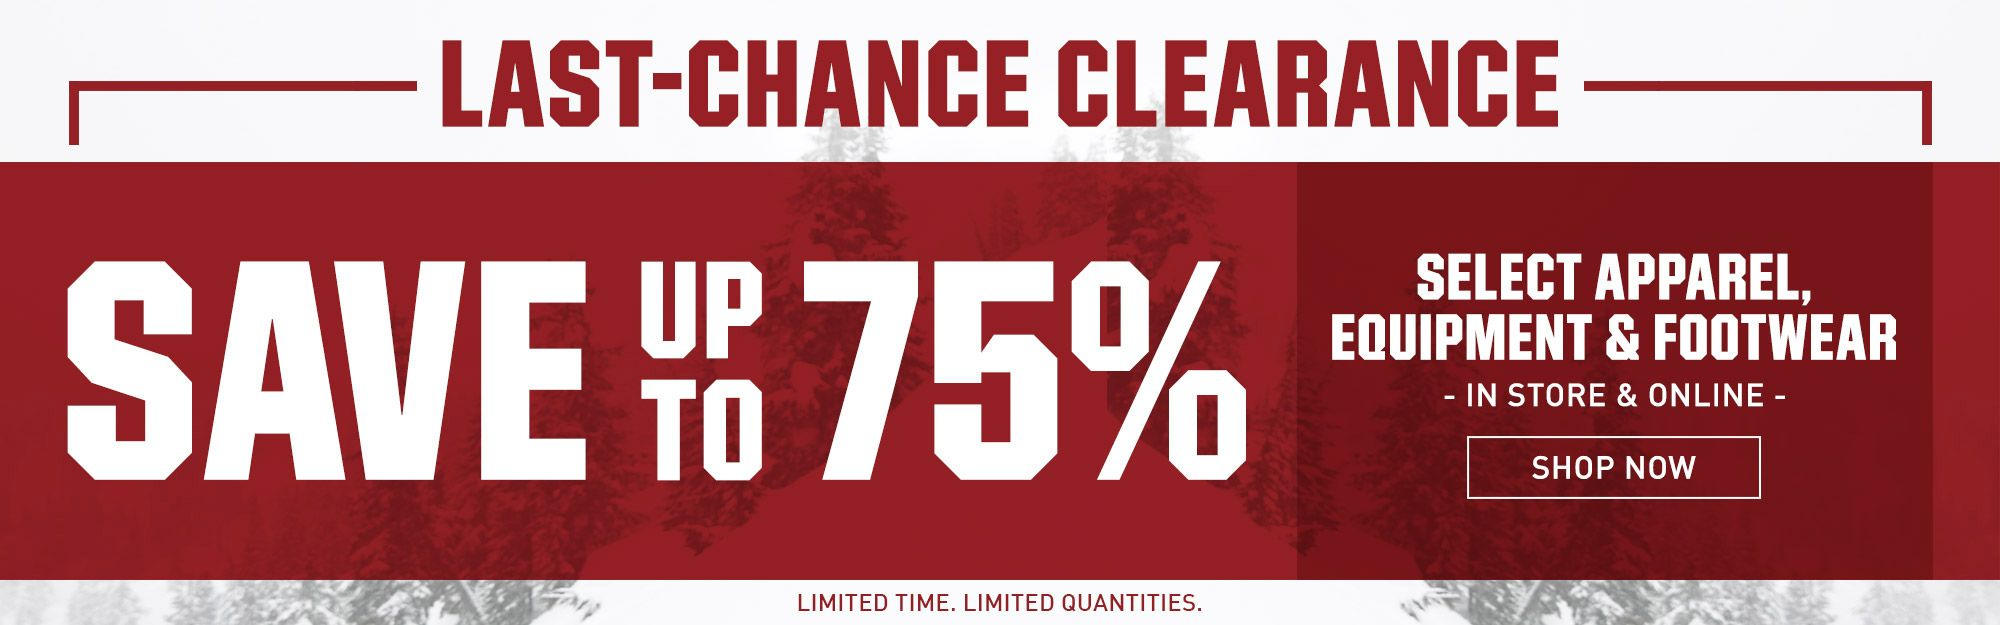 Last-Chance Clearance - Save Up to 75% - Select Apparel, Equipment & Footwear